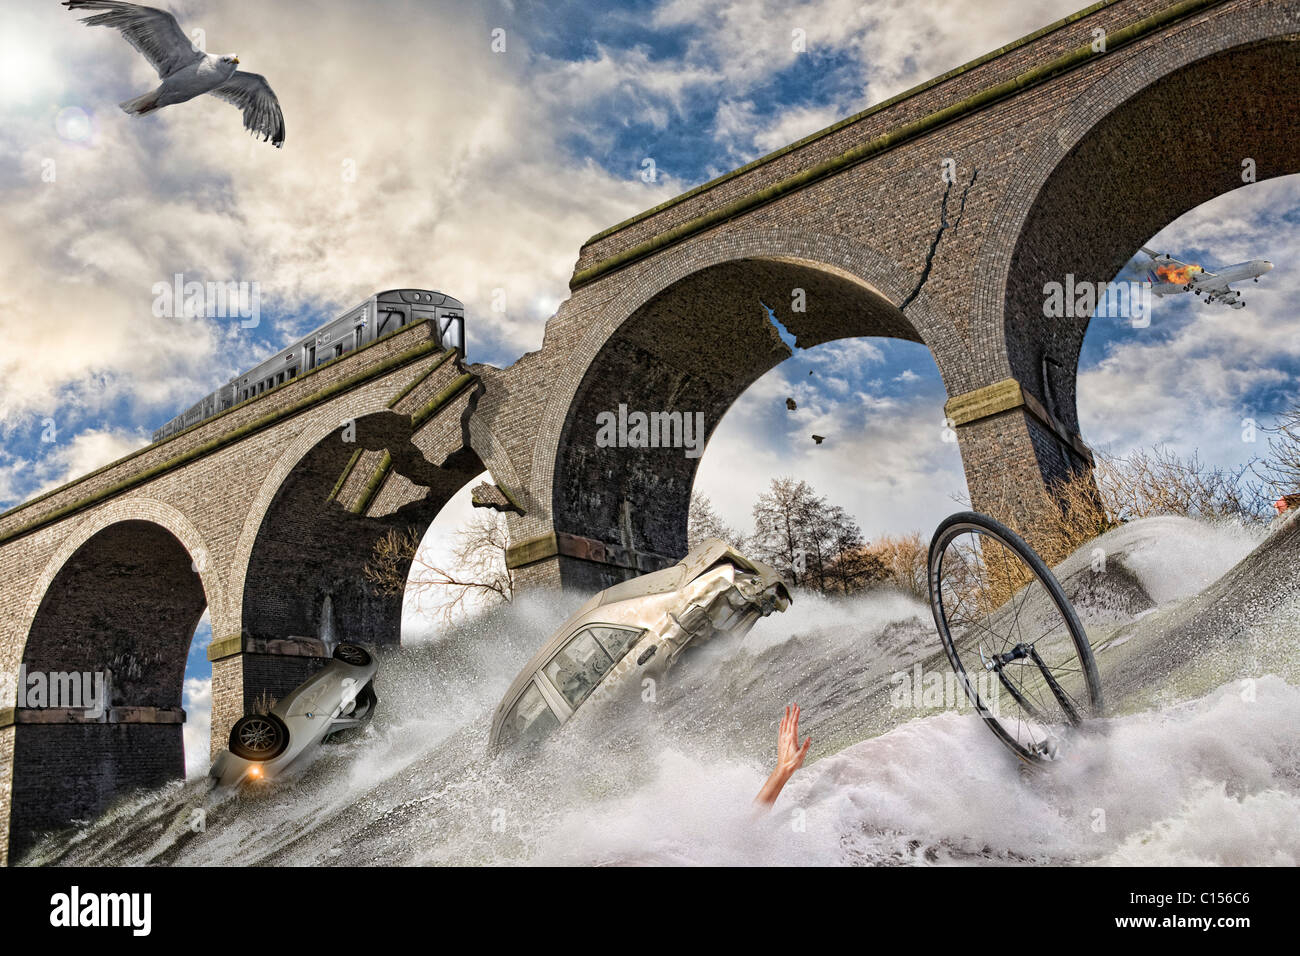 End of the world CGI flood - Stock Image